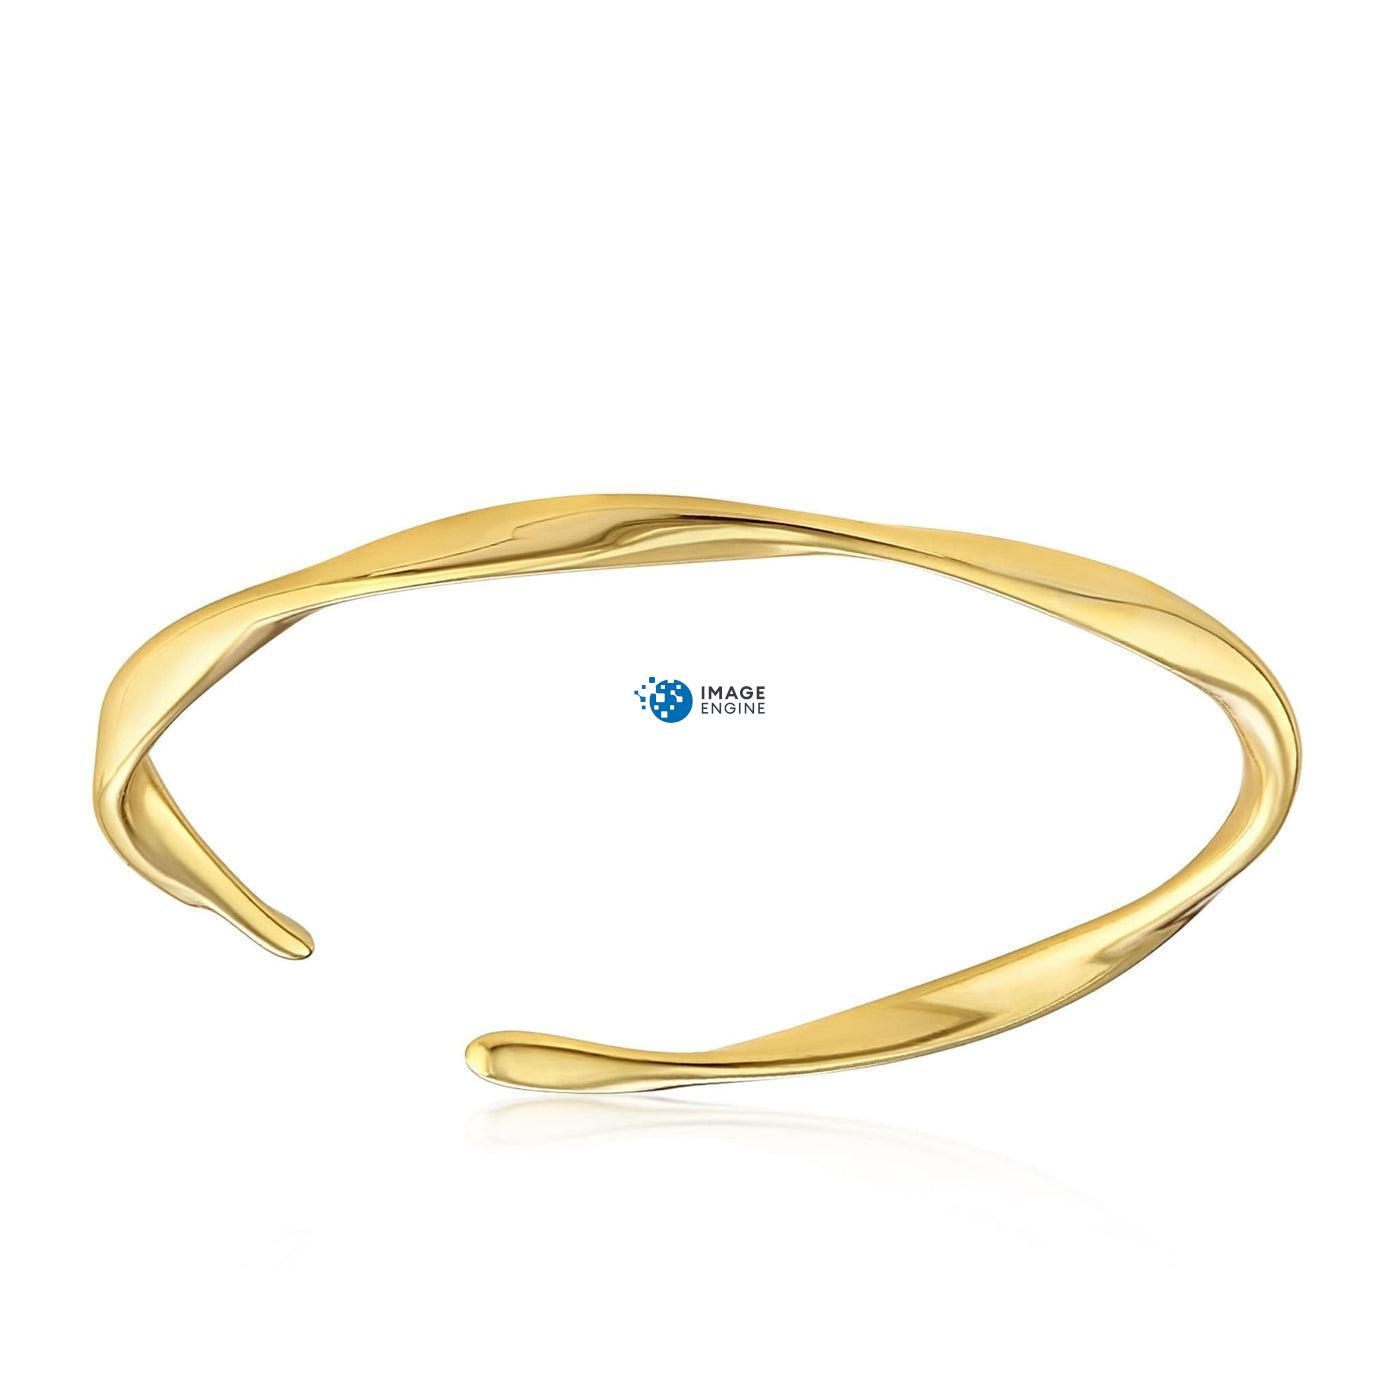 Olivia Twist Ring - Front View Facing Up - 18K Yellow Gold Vermeil